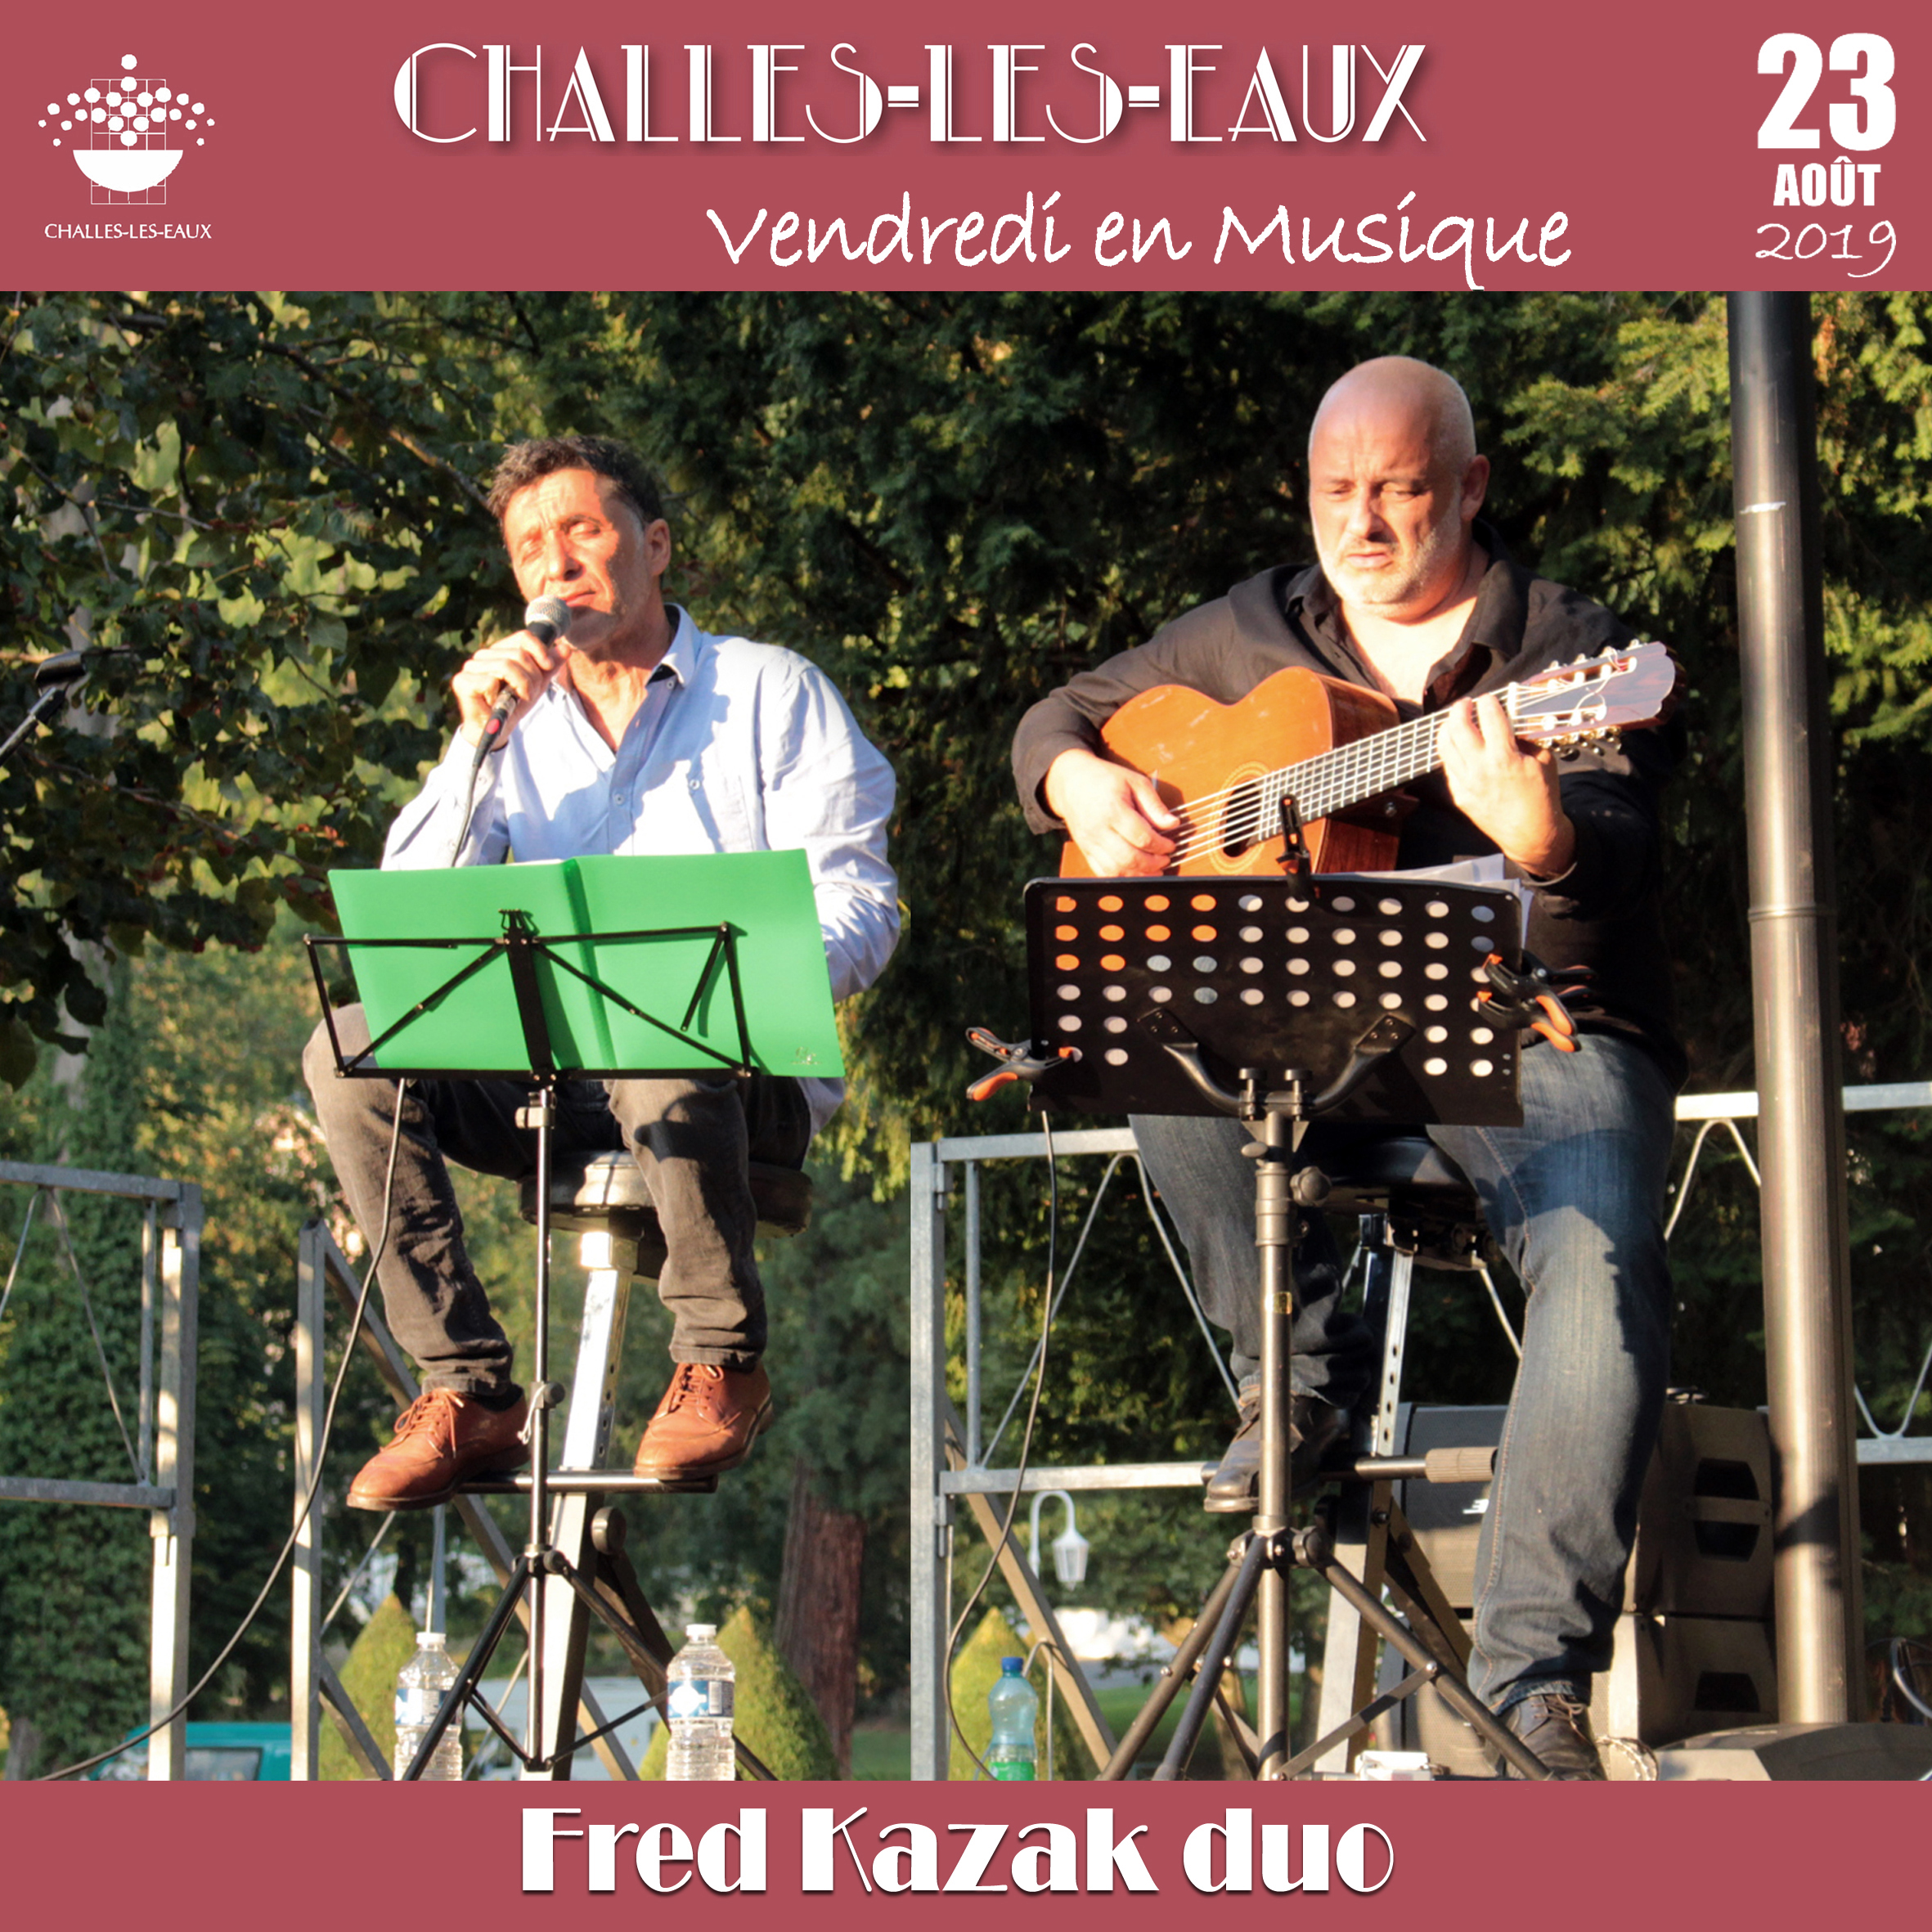 Fred Kazak duo